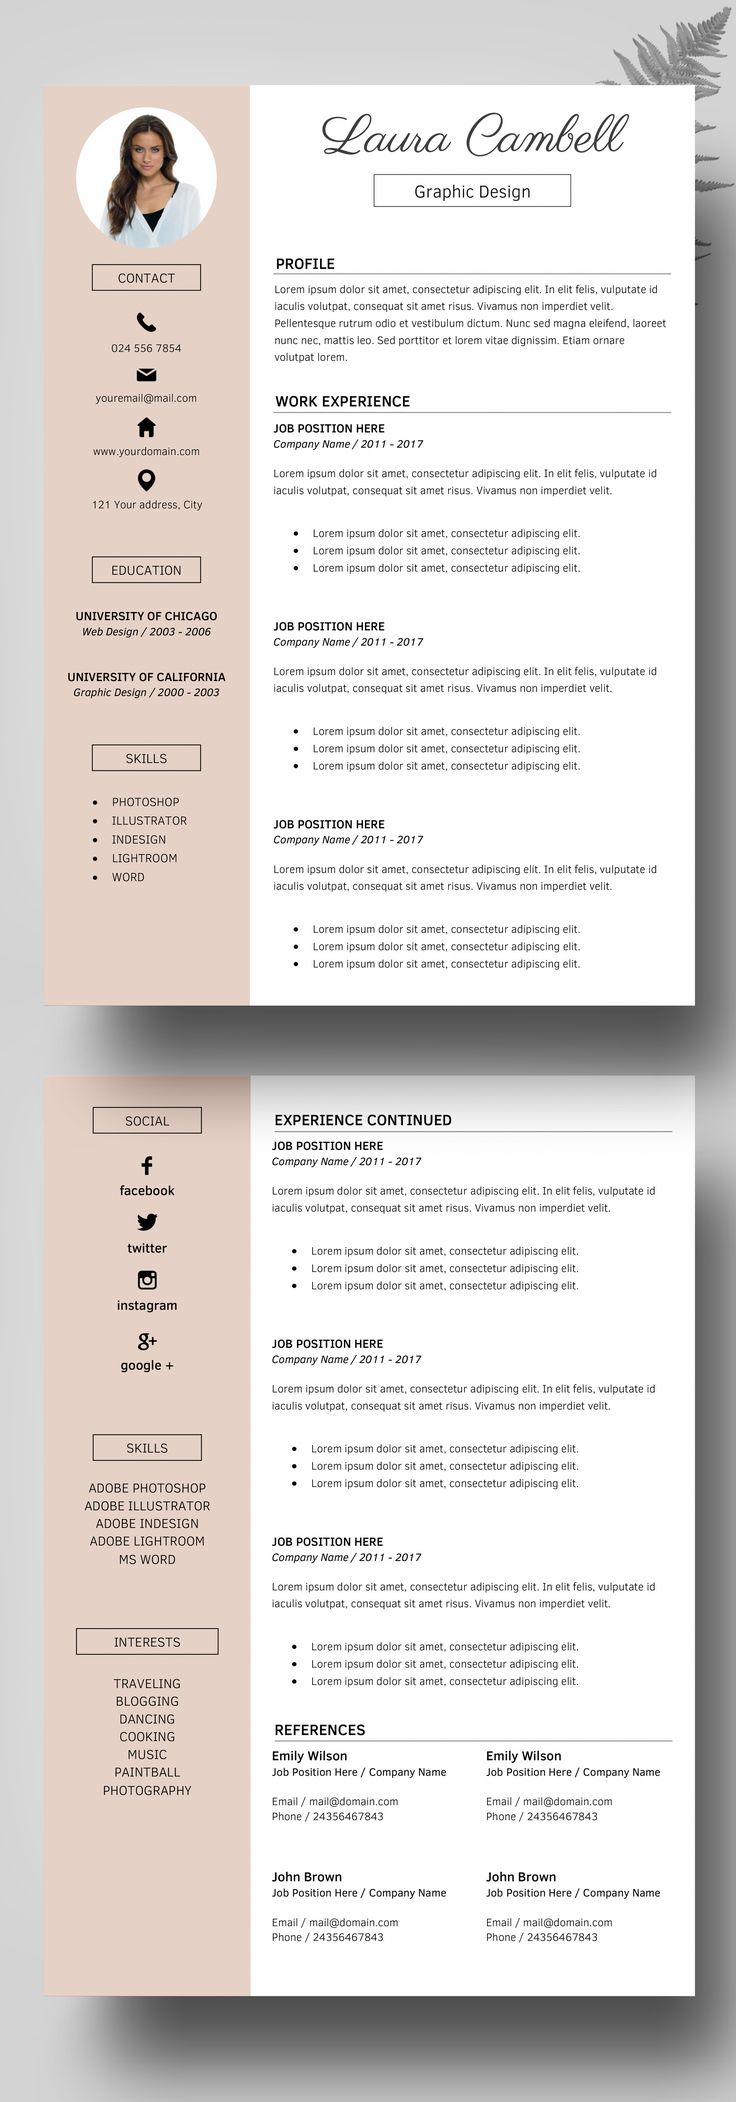 modern resume template cv template for word cover letter references icons